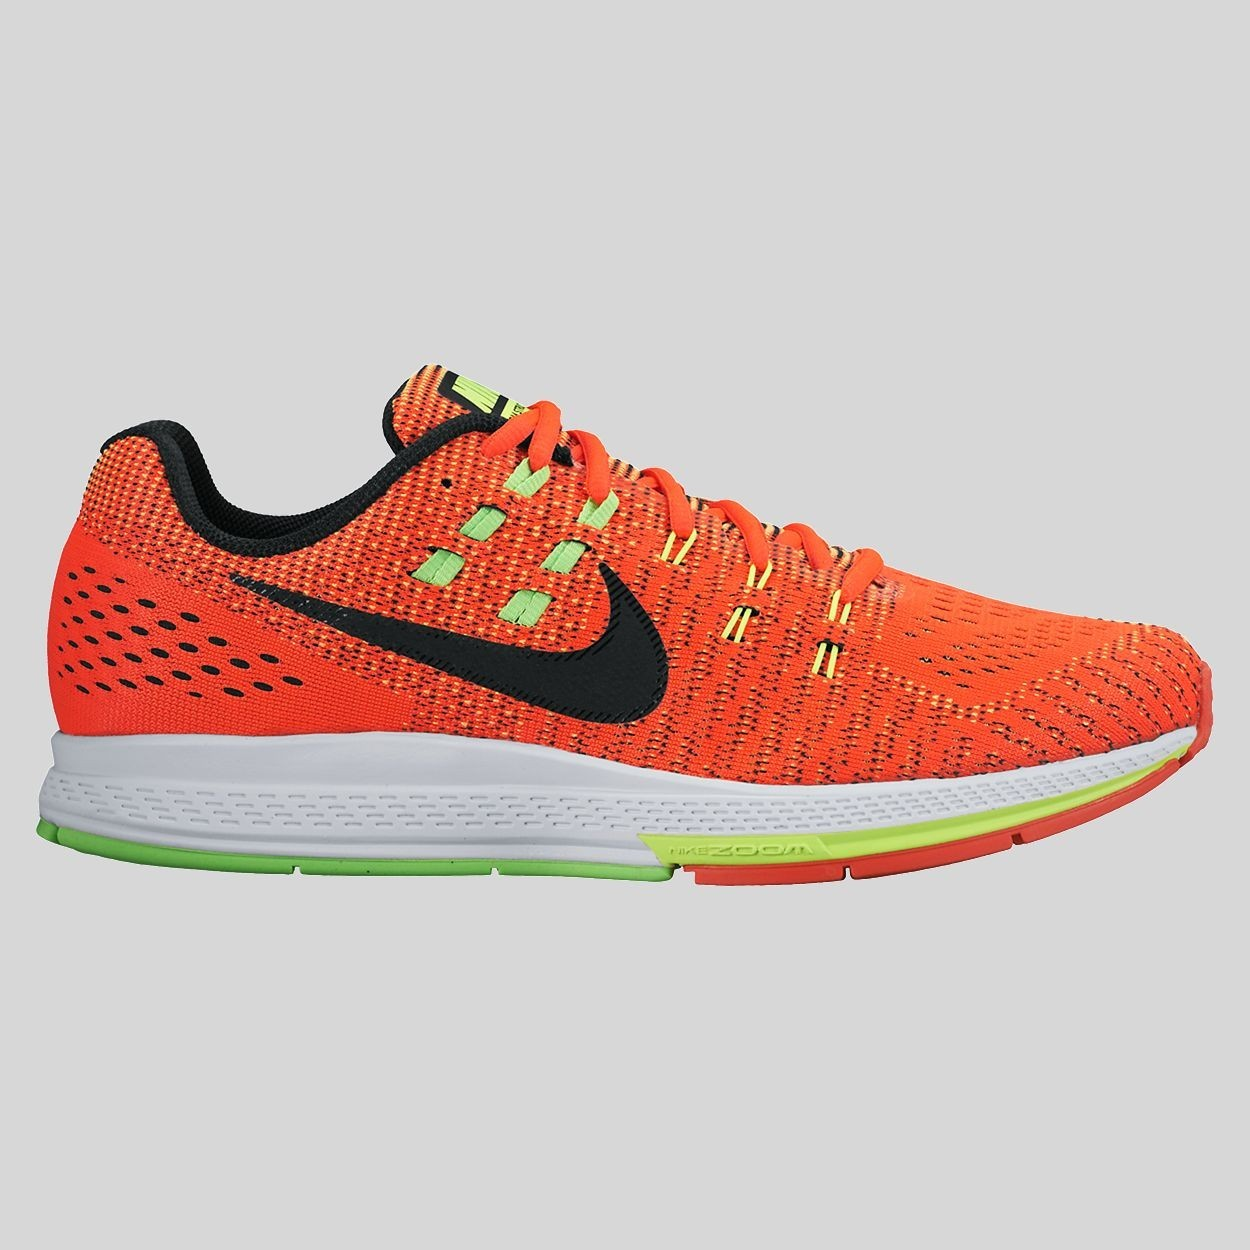 Karmesinrot Hell Structure Shop 19 Nike Air Zoom Online I7yvm6gYbf